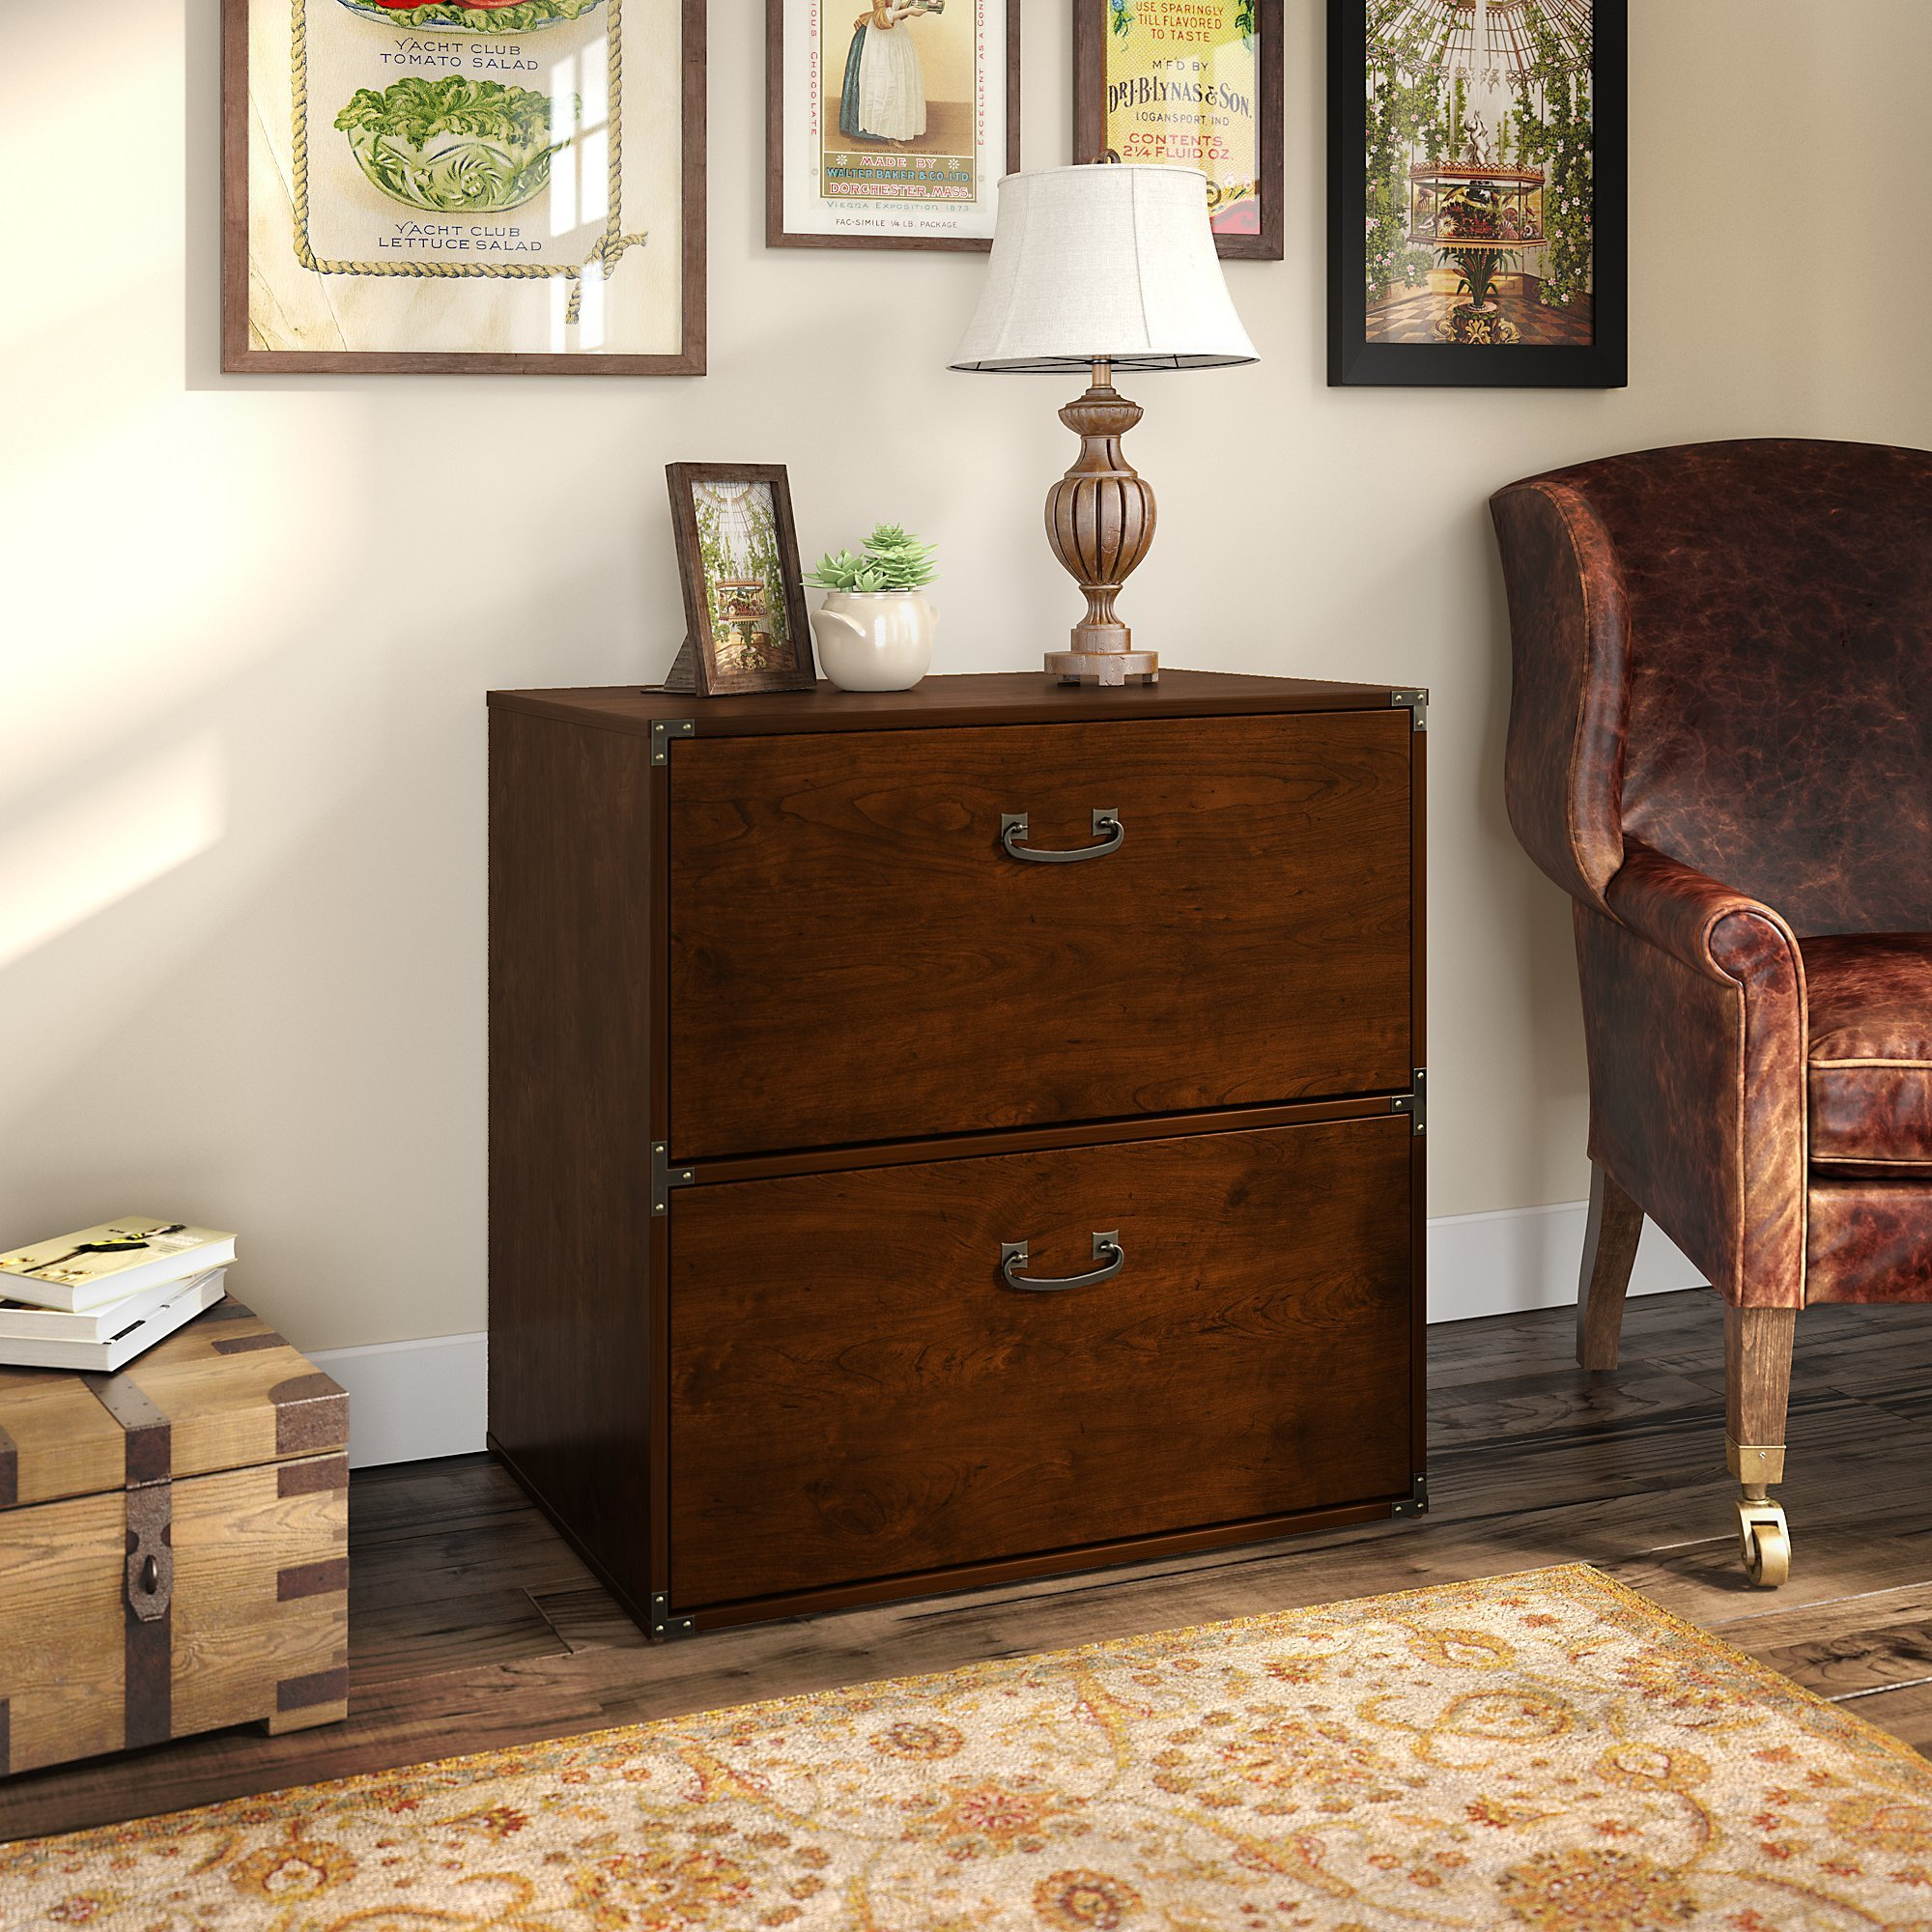 kathy ireland Home by Bush Furniture Ironworks Lateral File Cabinet in Coastal Cherry by kathy ireland Home by Bush Furniture